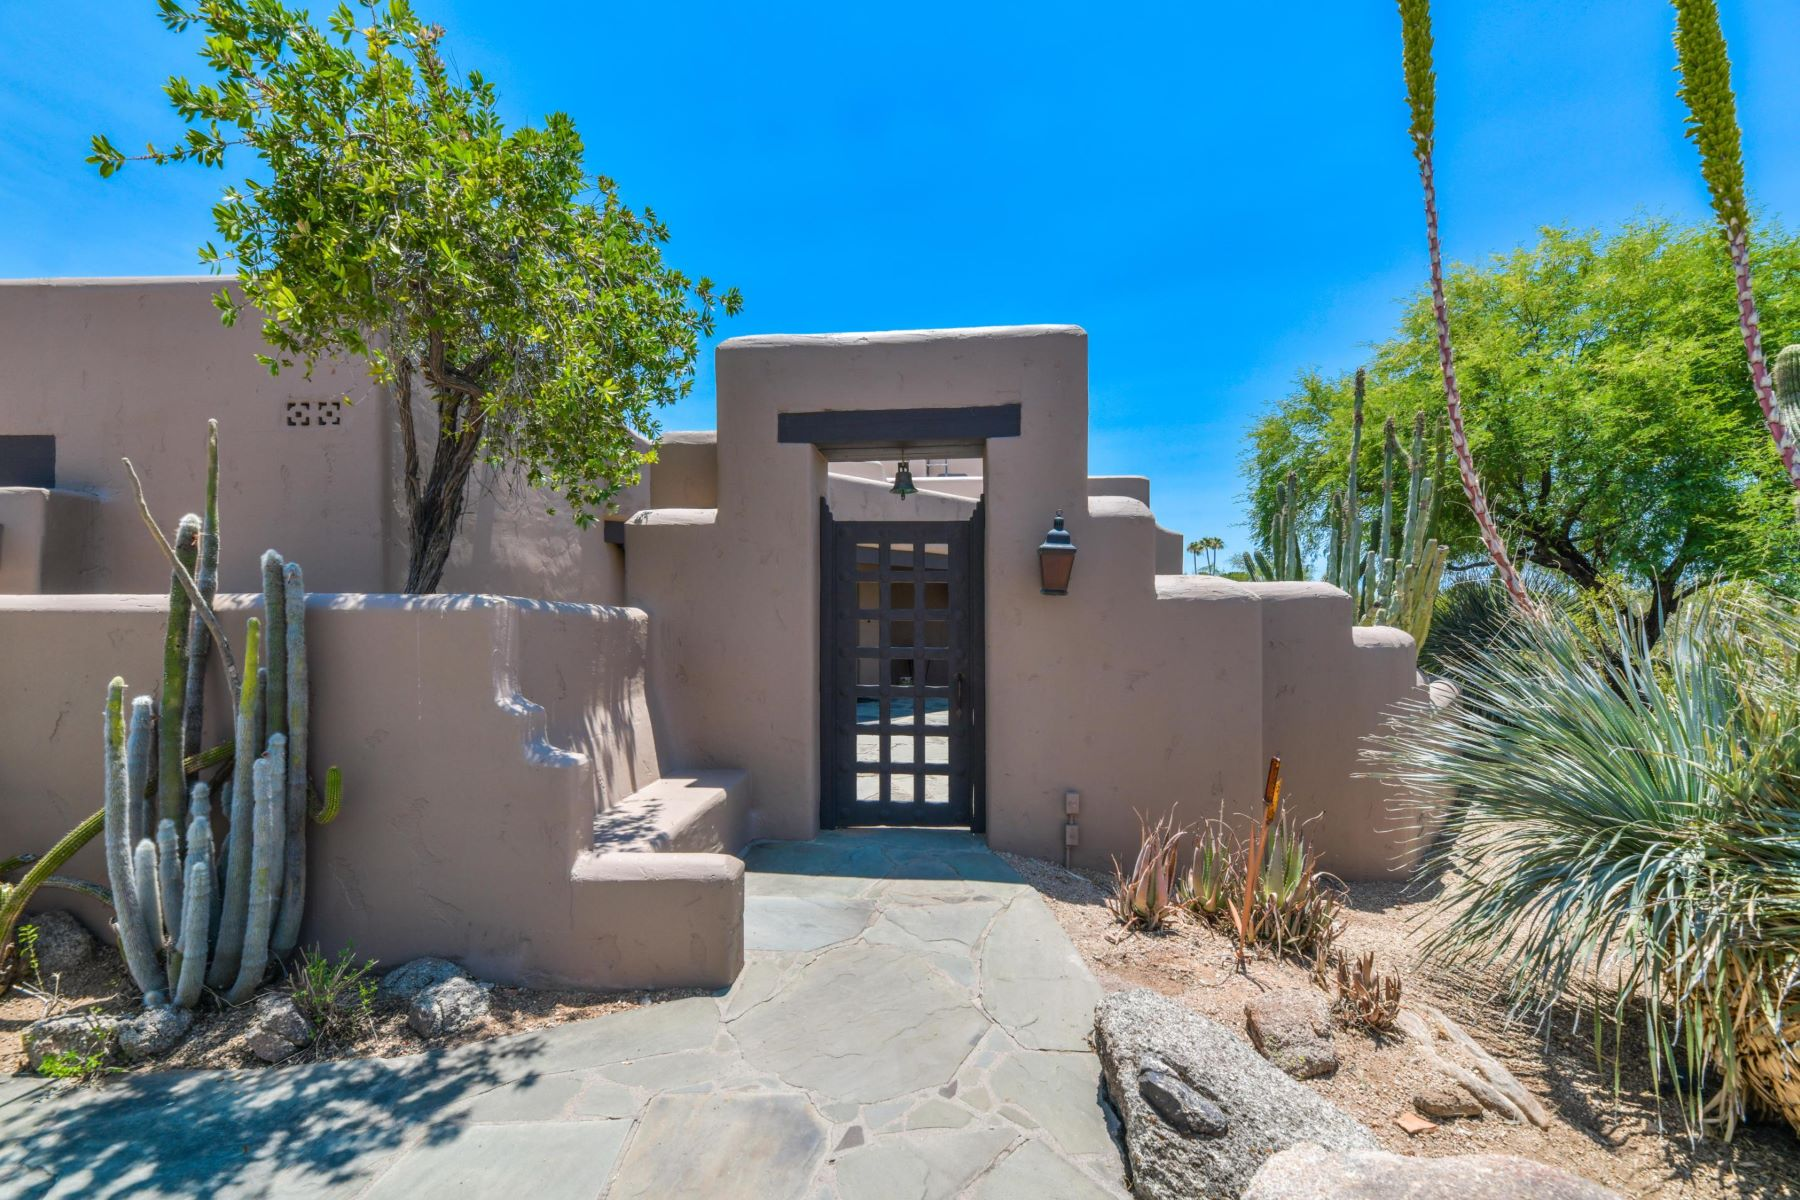 Single Family Homes for Active at The Boulders 3051 IRONWOOD RD 25 Carefree, Arizona 85377 United States